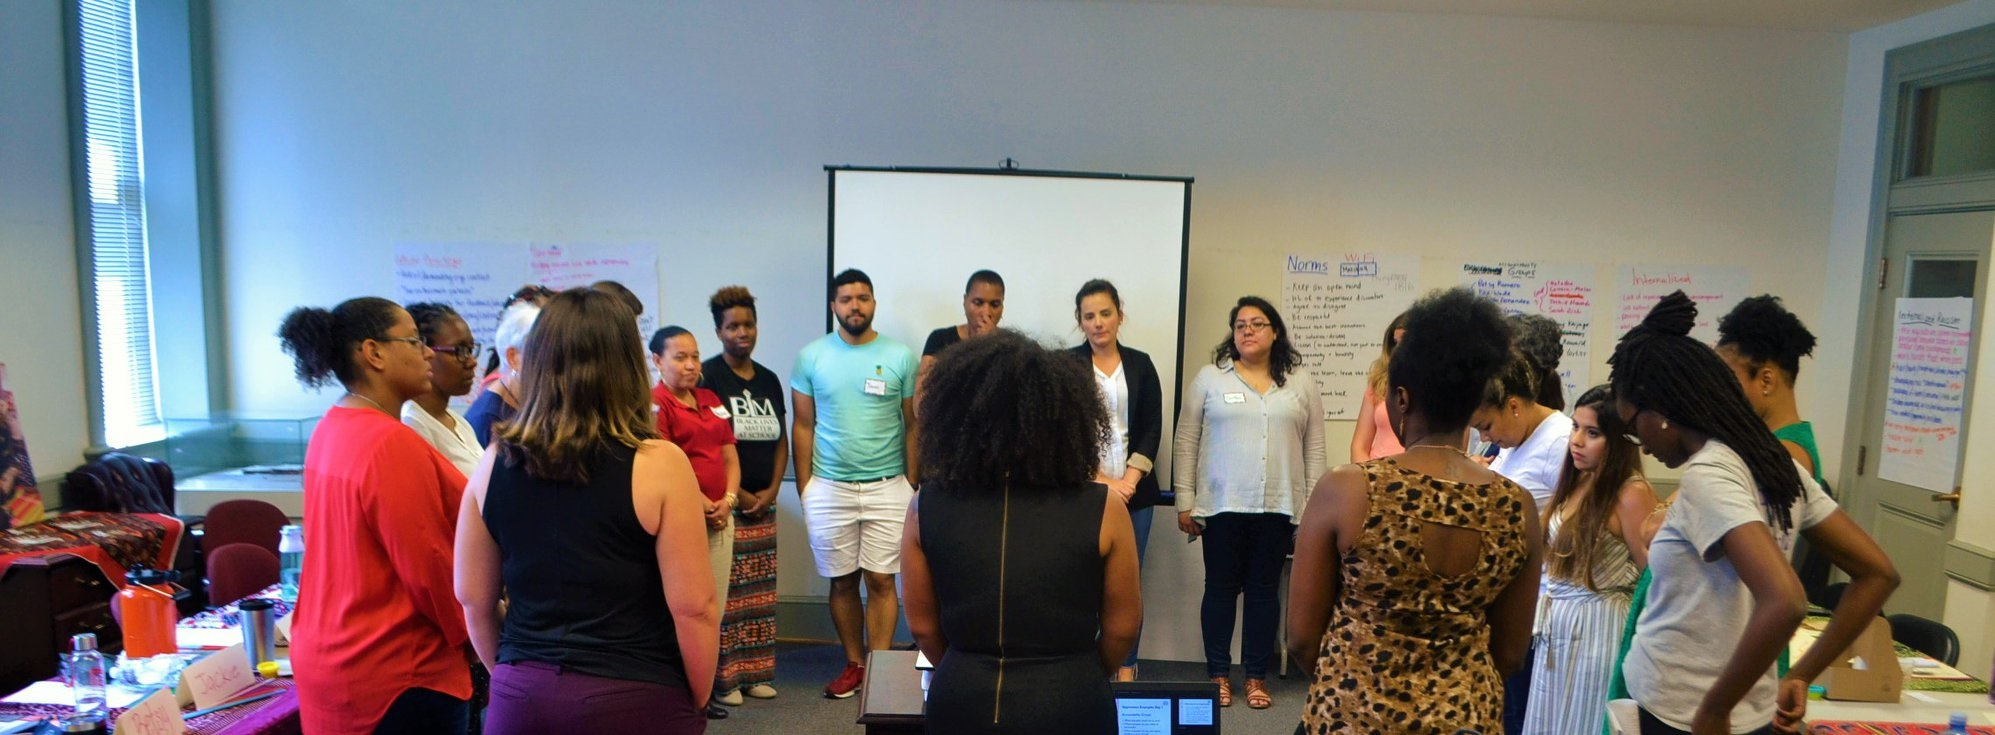 2019 Tellin' Stories Race, Equity, and Family Engagement Summer Institute for Teachers and Staff